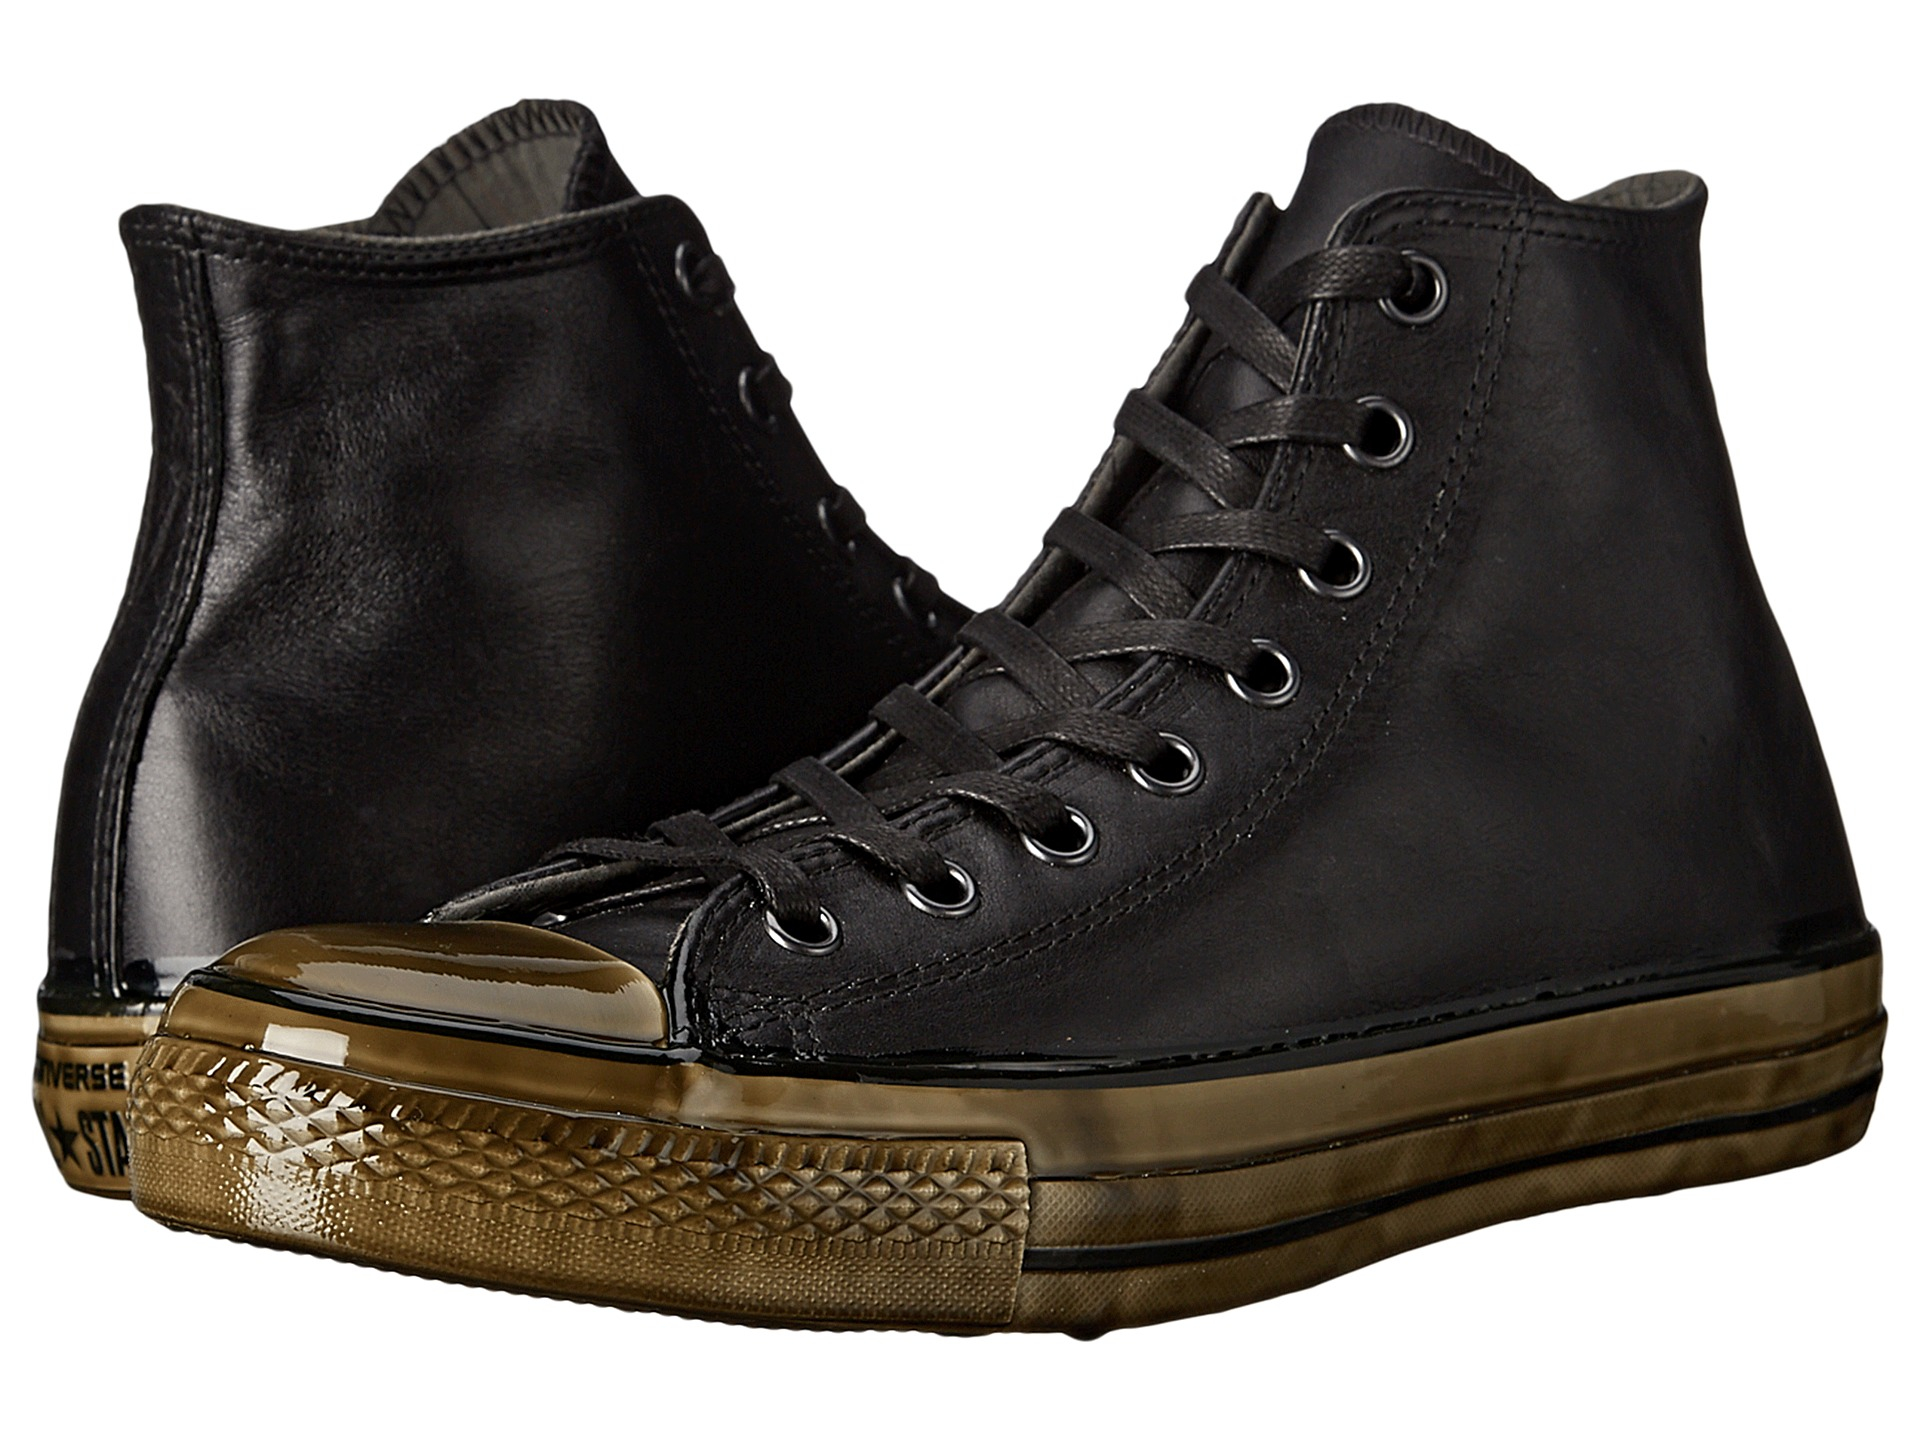 Converse Chuck Taylor All Star Dipped Outsole Hi In Black